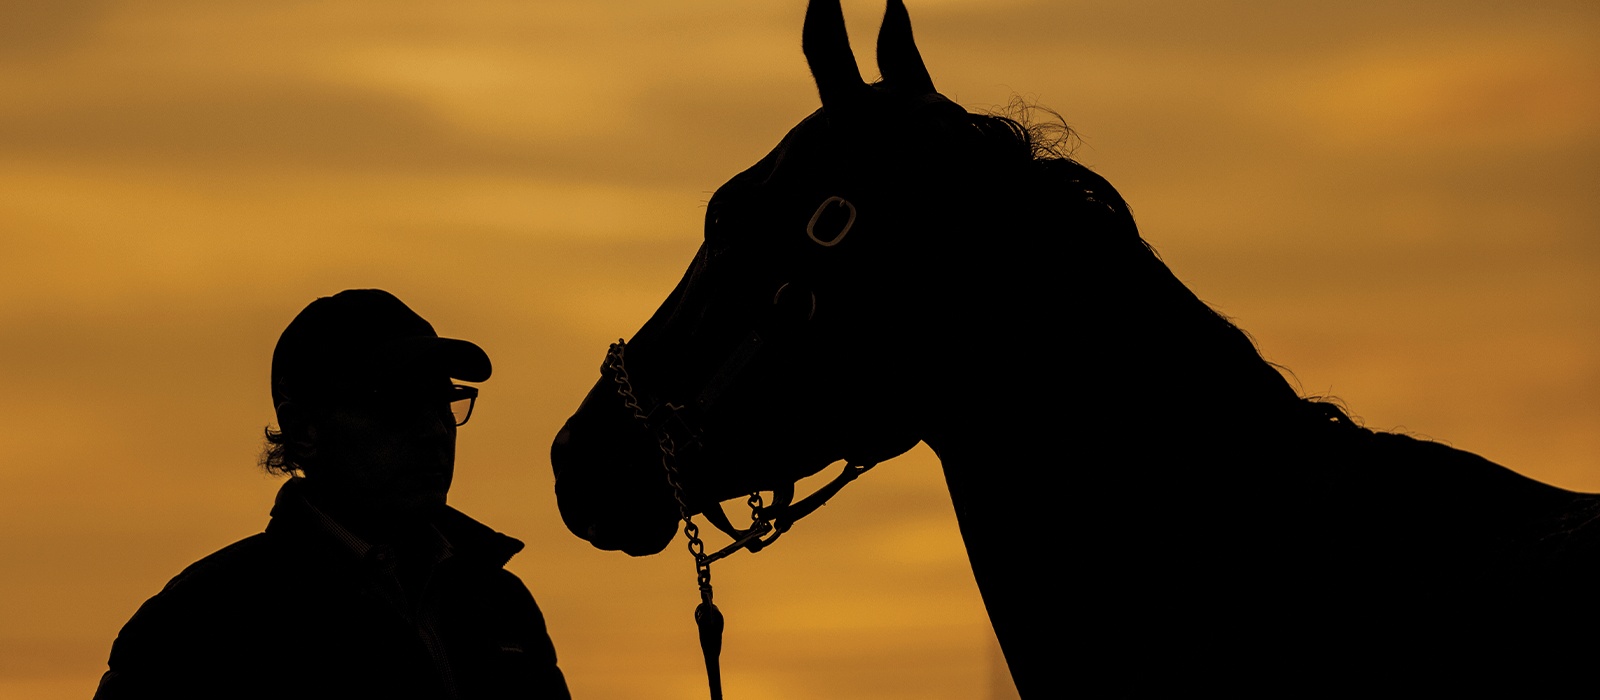 Facts About Unprecedented Horse Racing Reforms in California